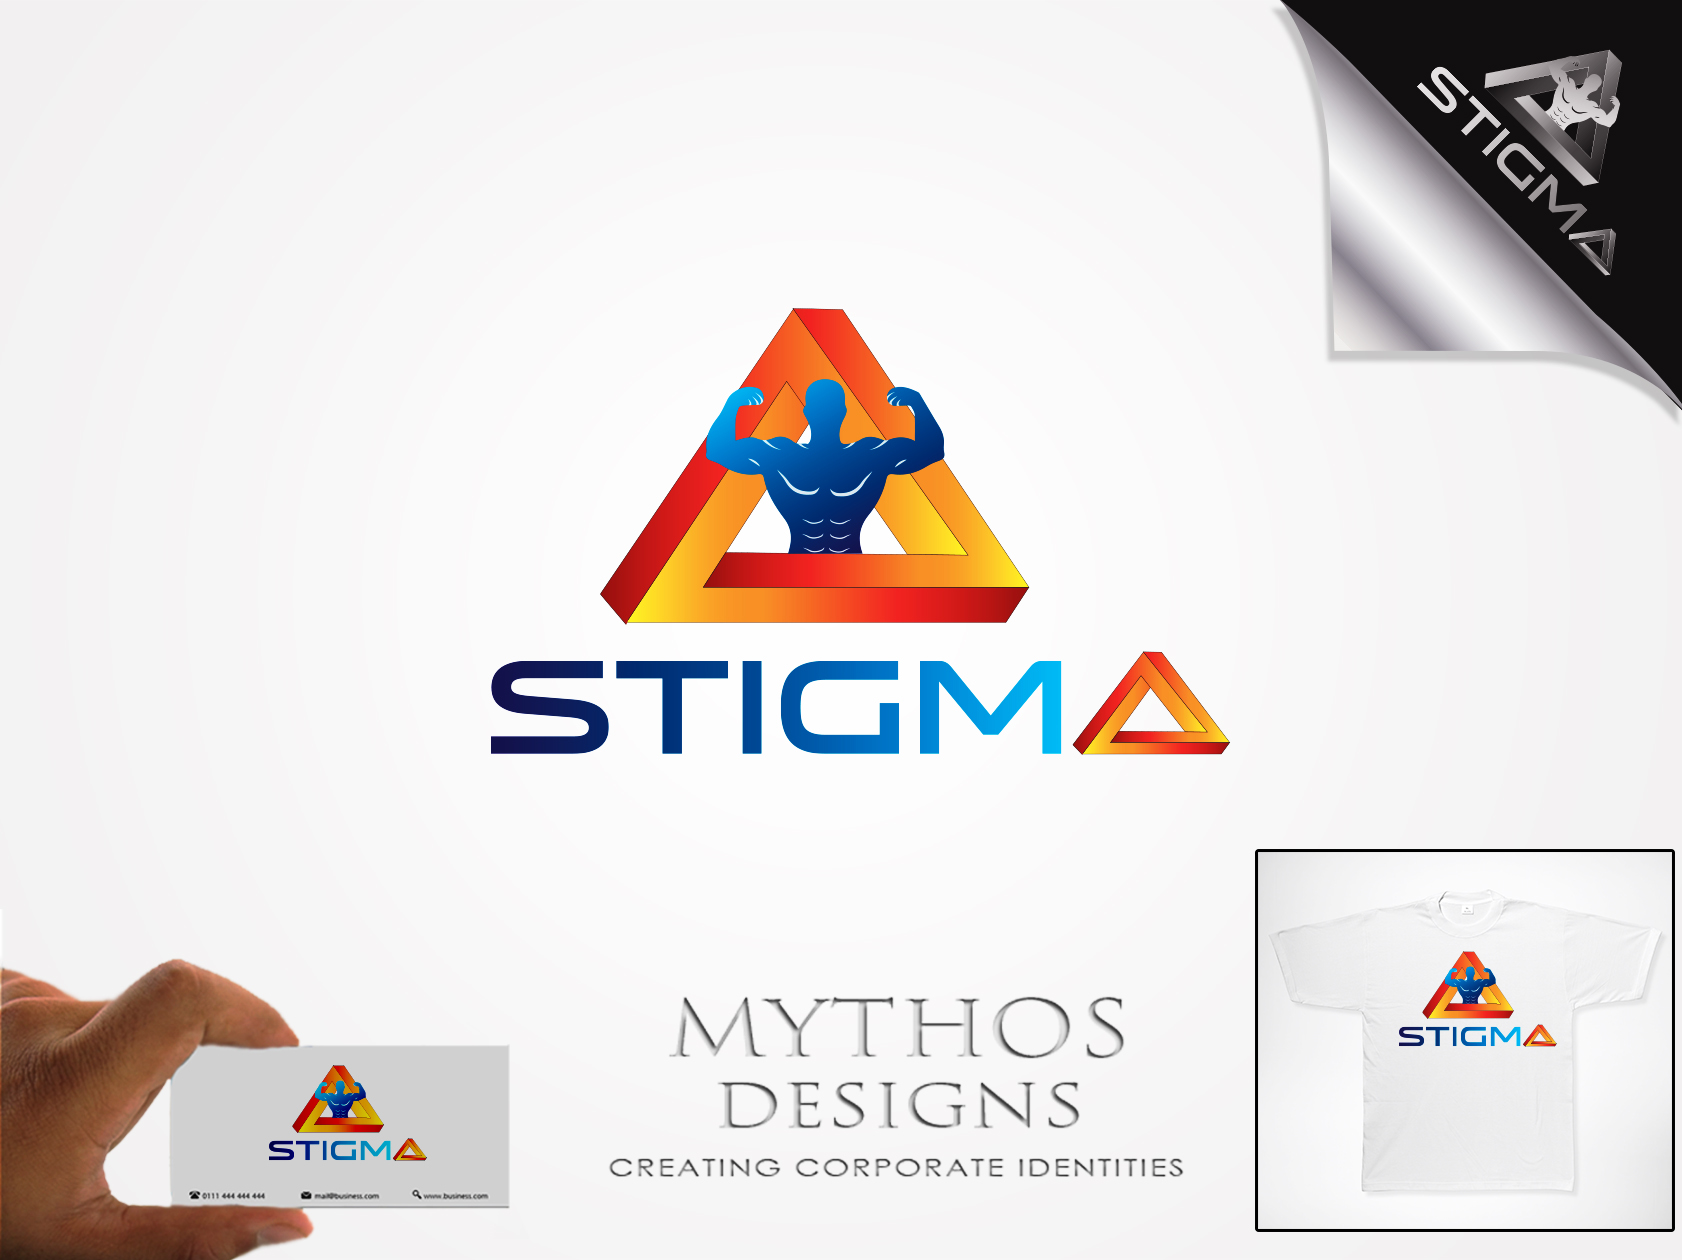 Logo Design by Mythos Designs - Entry No. 27 in the Logo Design Contest Creative Logo Design for STIGMA.